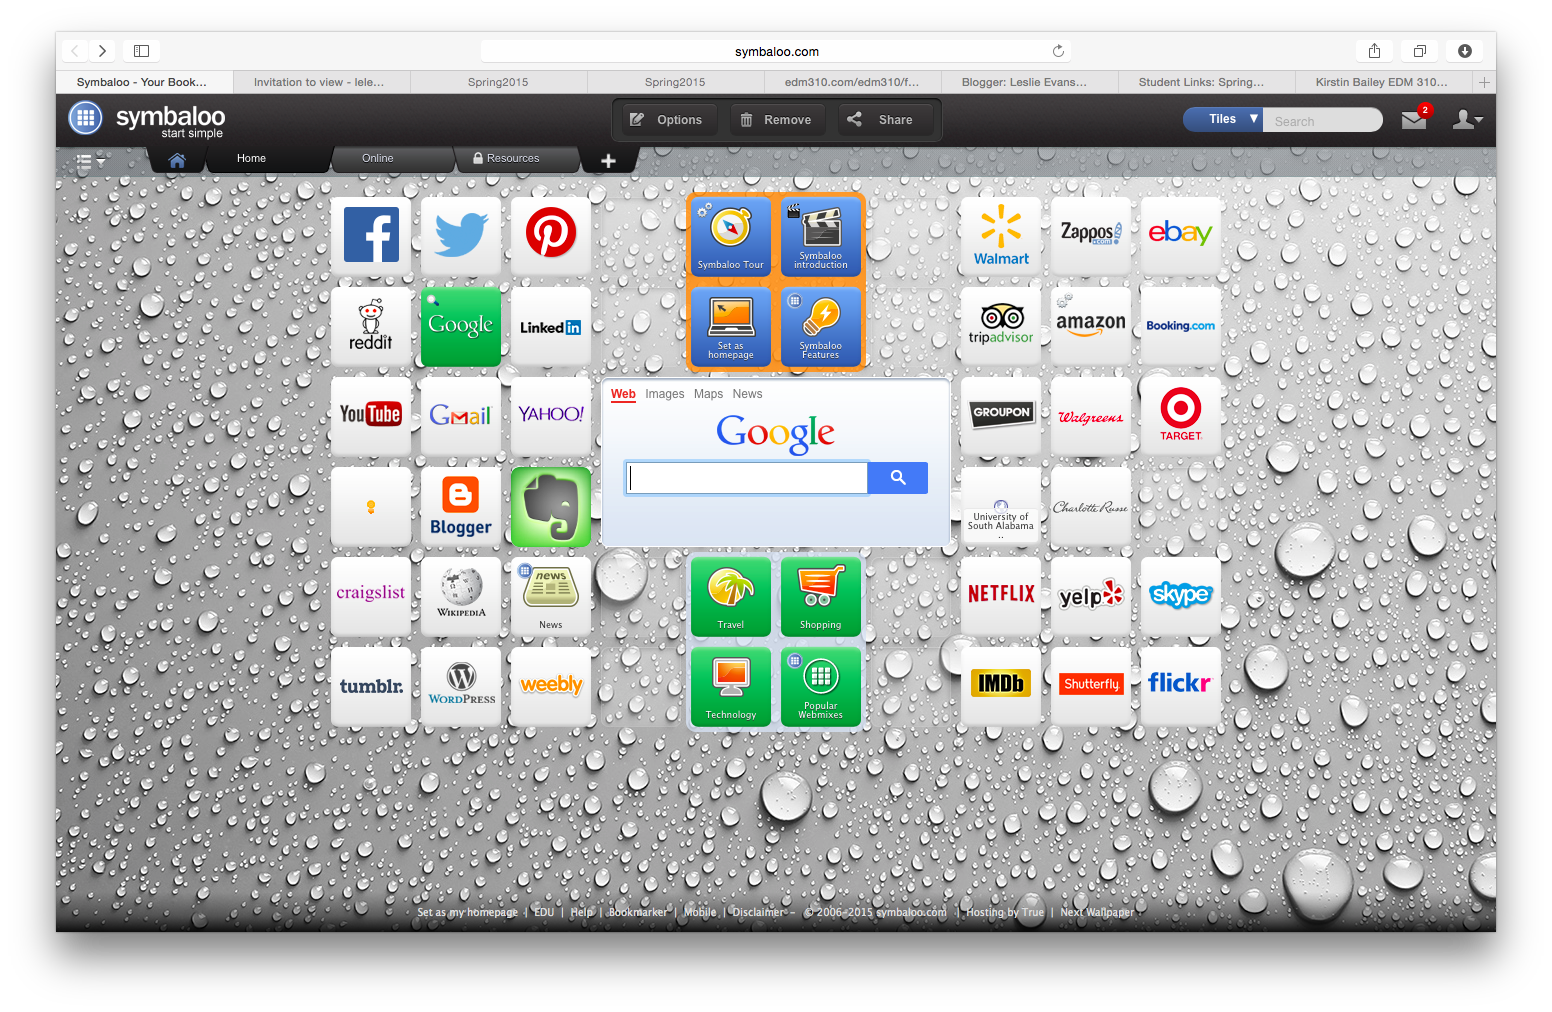 Leslie's Symbaloo